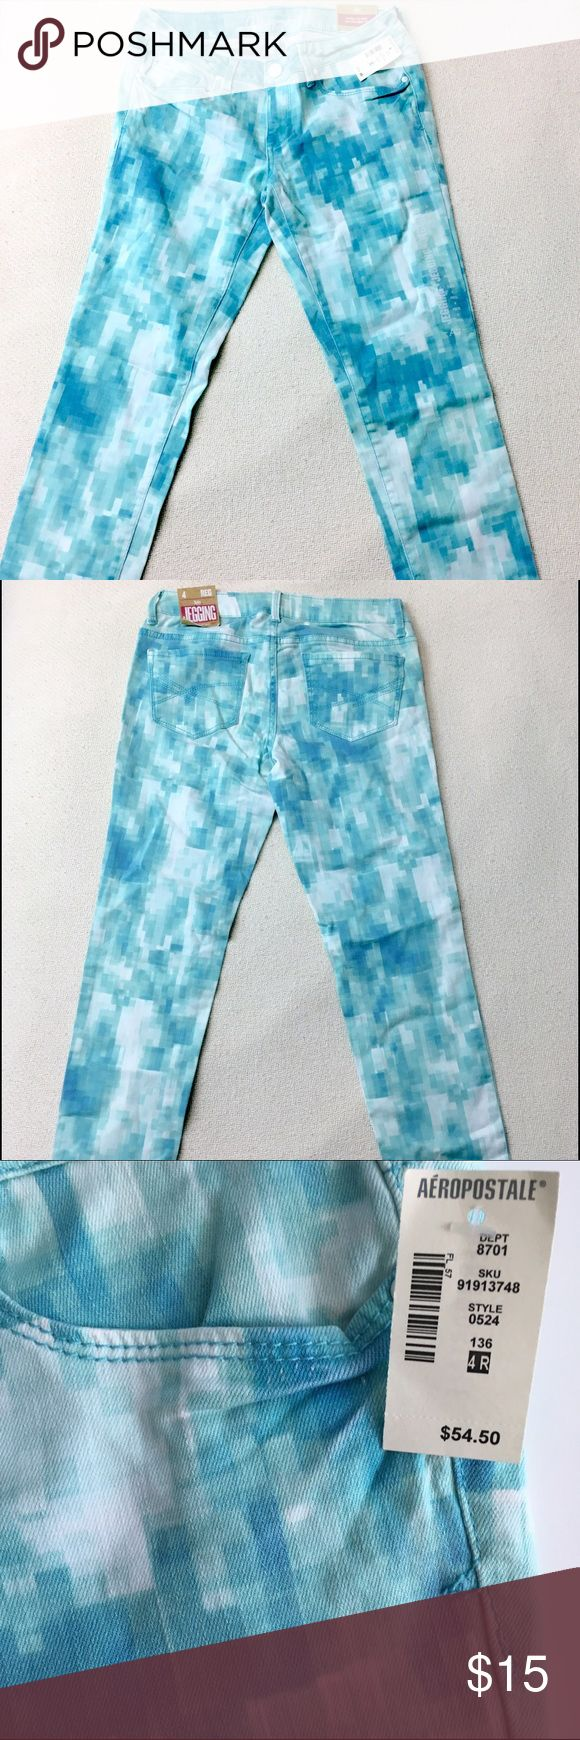 Aeropostale Watercolor Geo Printed Skinny Jeans These jeans feature a geometric watercolor print. They are the Lola Jegging fit. 64% Cotton 34% Rayon 2% Spandex Aeropostale Jeans Skinny